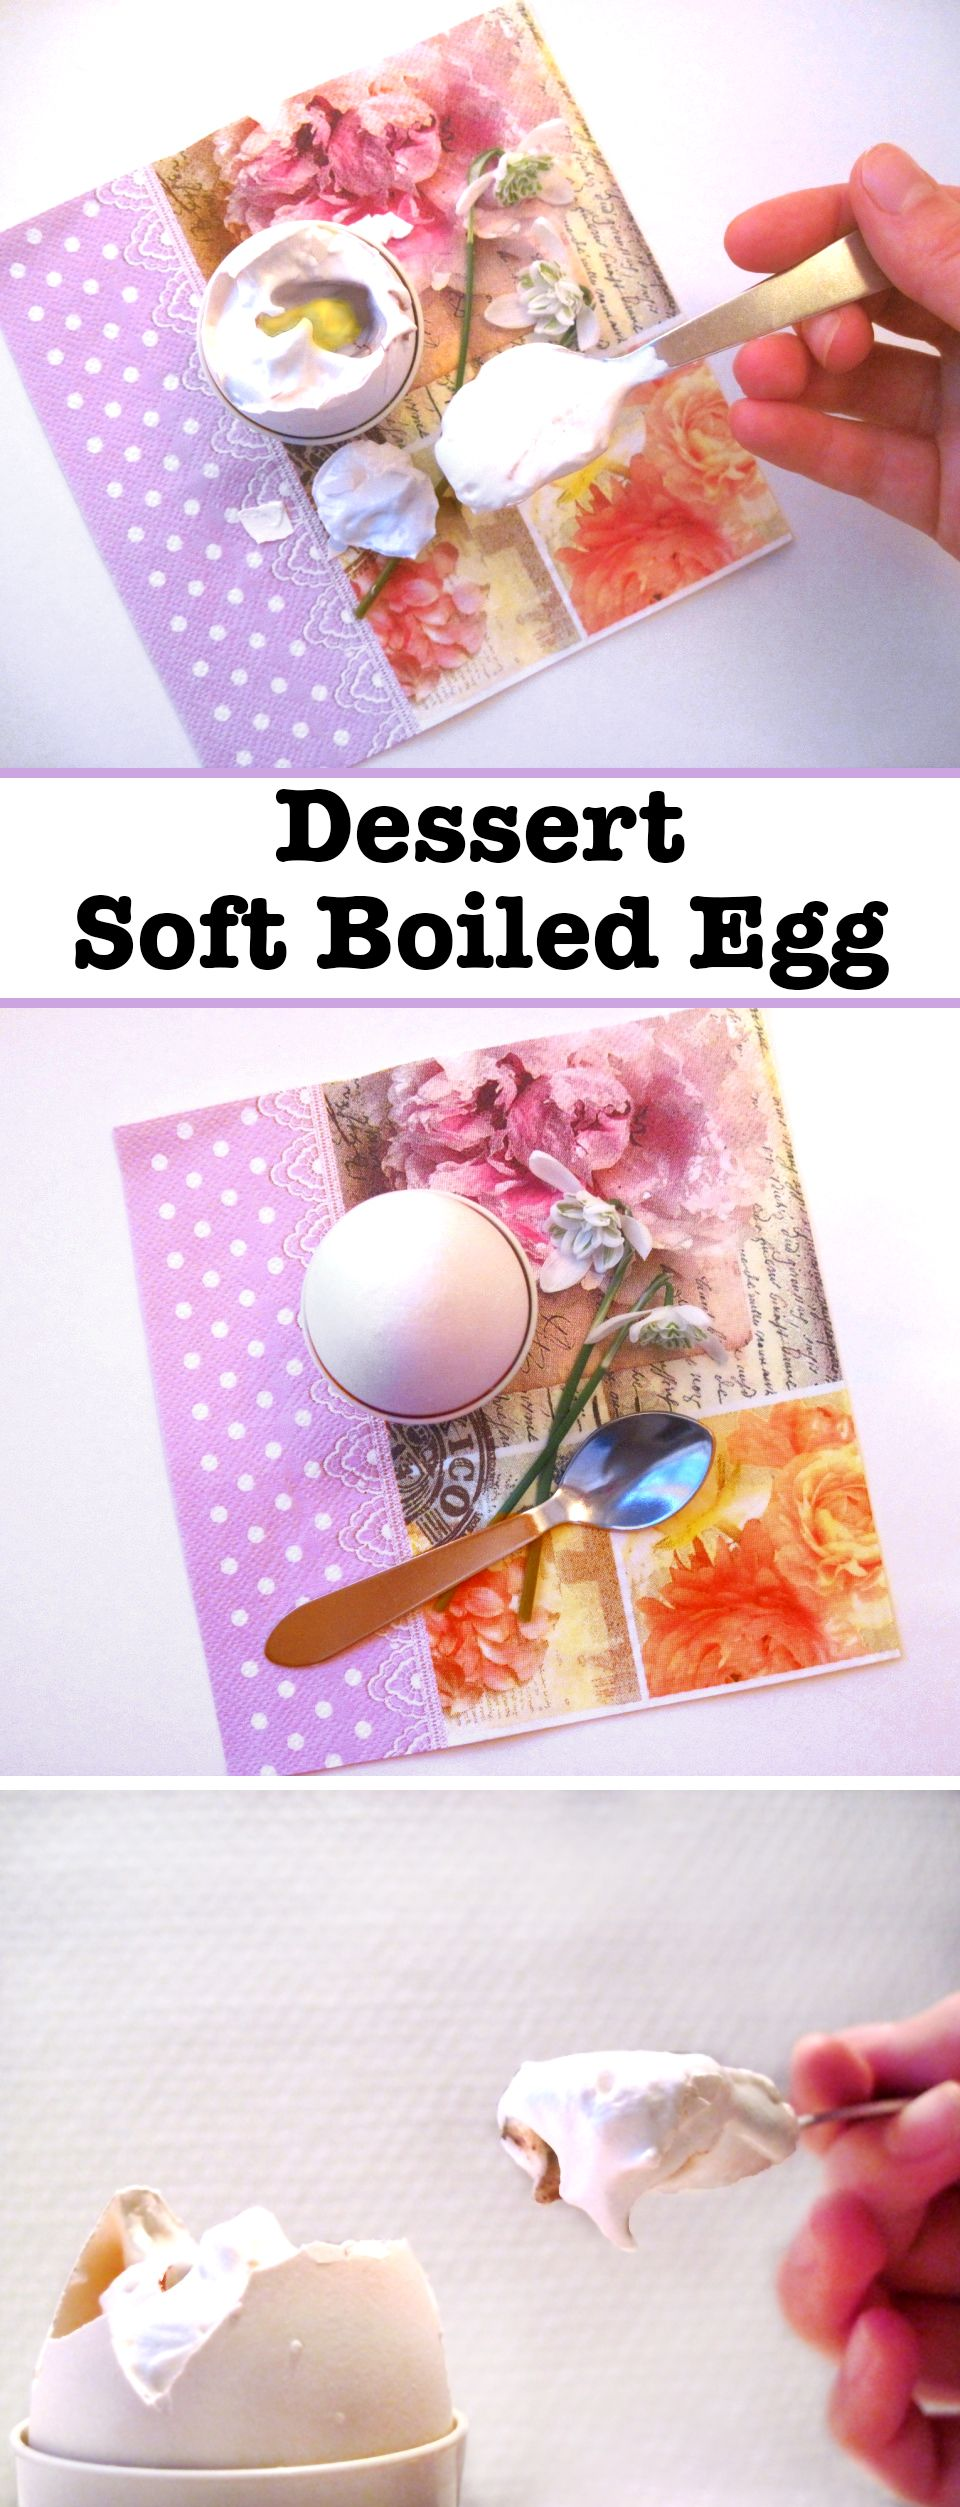 This is a fun brunch dessert disguised as a boiled breakfast egg. When you crack this shell, instead of finding a soft boiled egg, inside you'll find homemade marshmallow fluff and a lemon curd yoke!